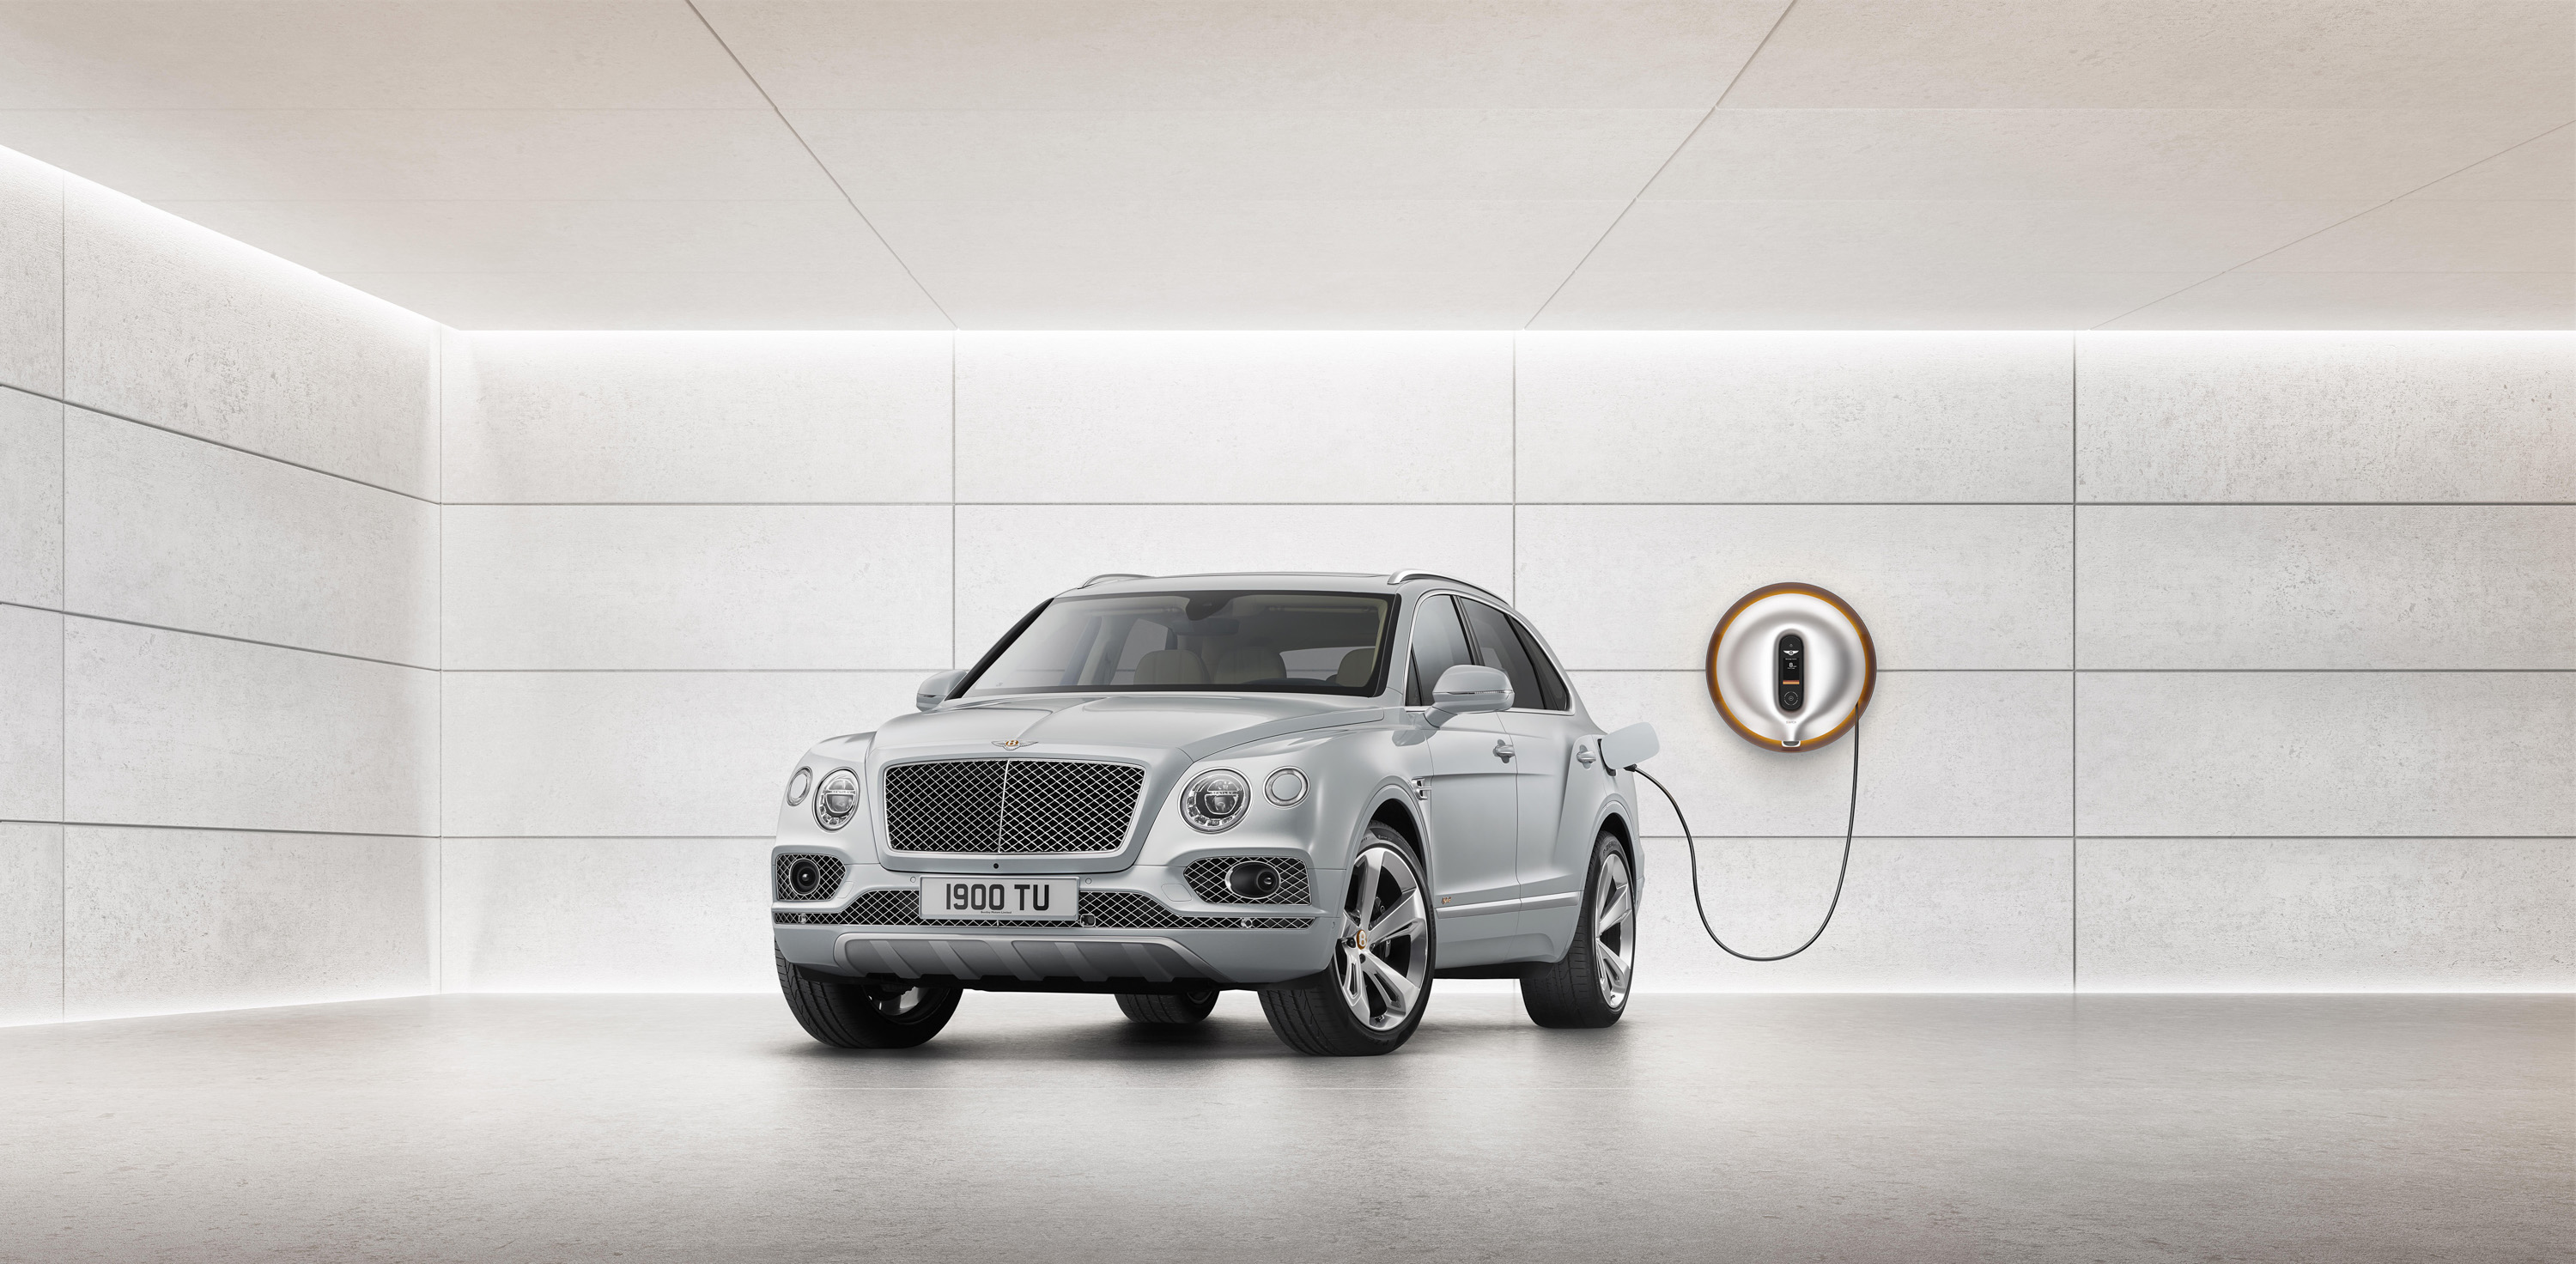 infographic car the rybrook specialist bentley cars who what makes infographics a